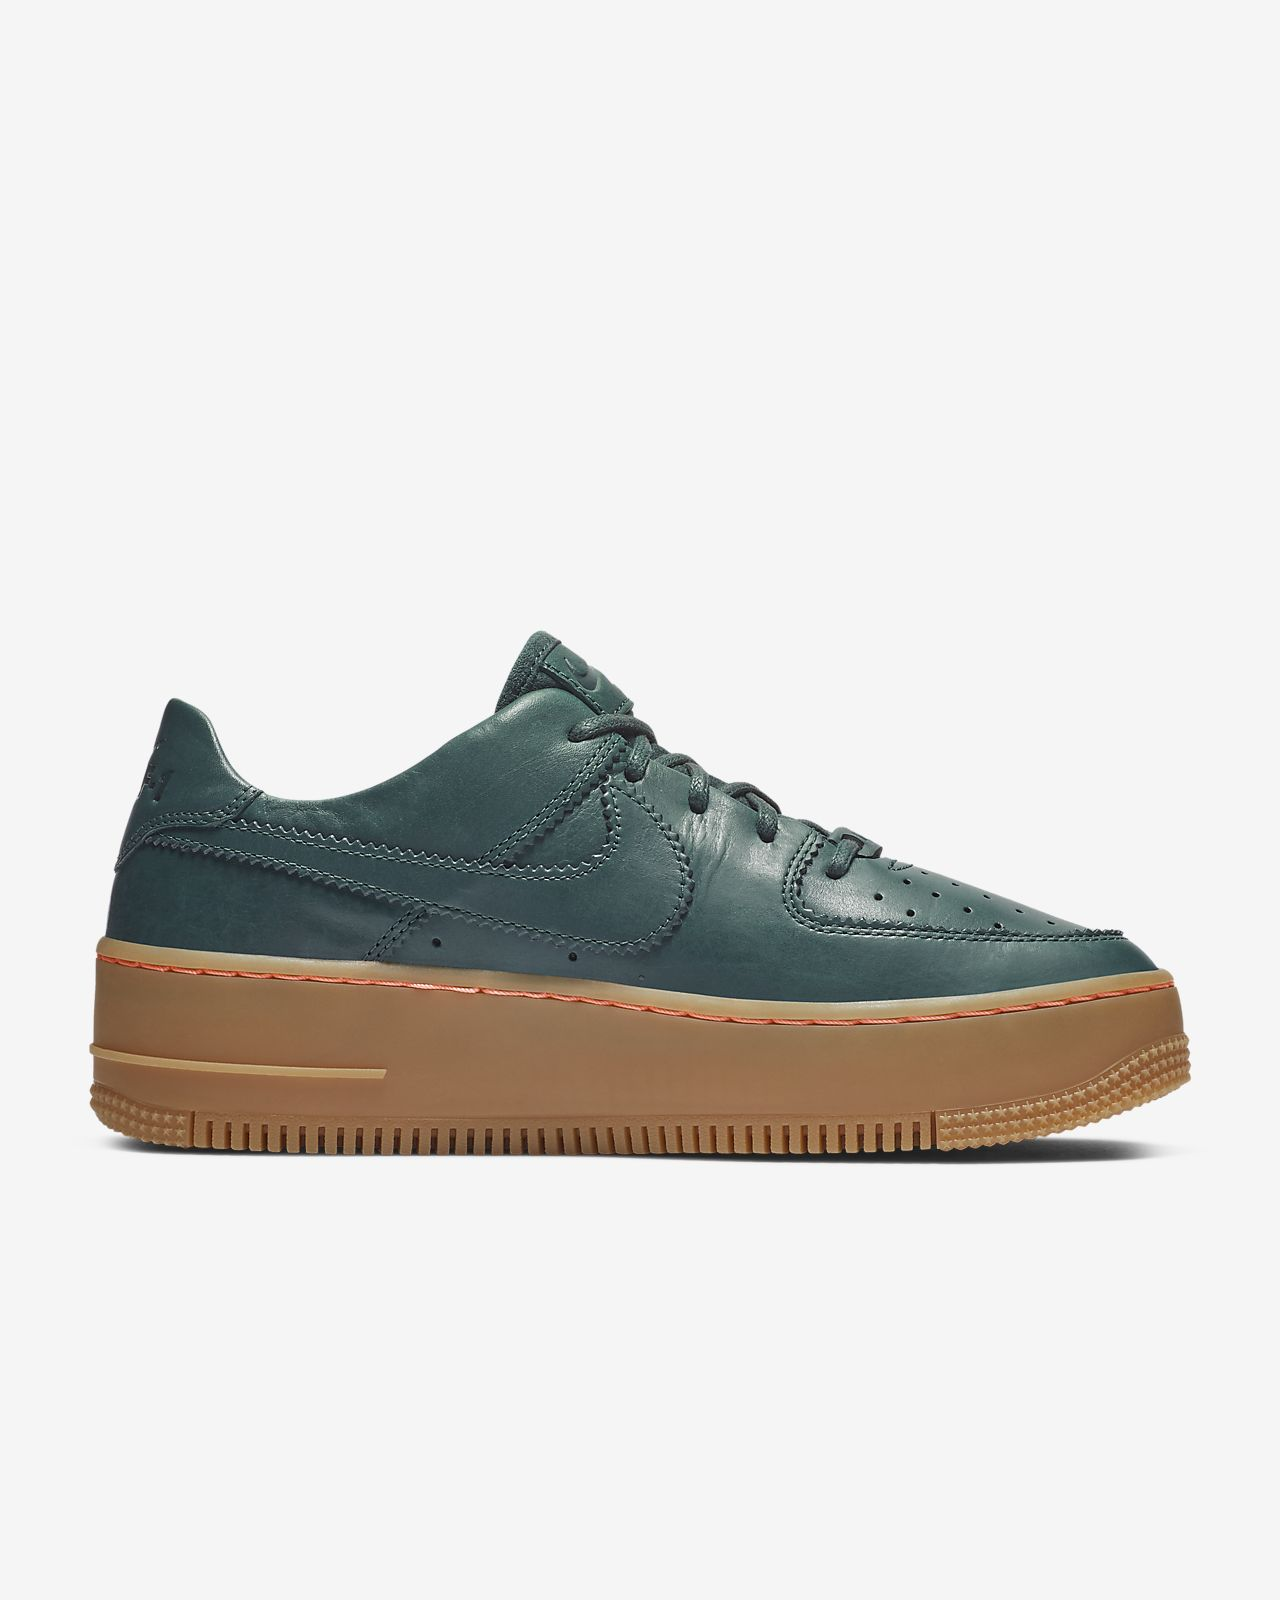 3f1a978ec3ba1 Nike Air Force 1 Sage Low LX Women's Shoe. Nike.com CH